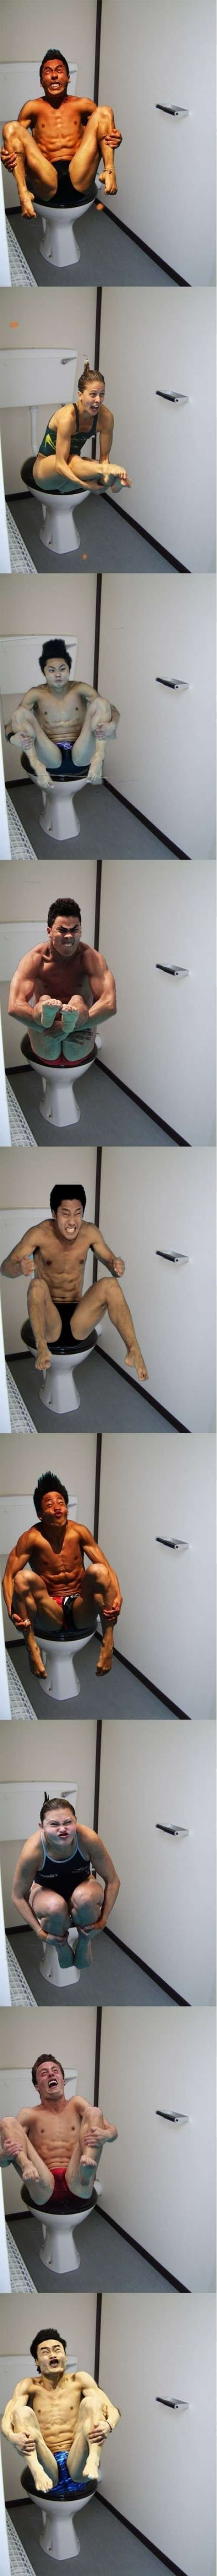 olympic divers photoshopped on to toilets. this is too much... hahahaha.